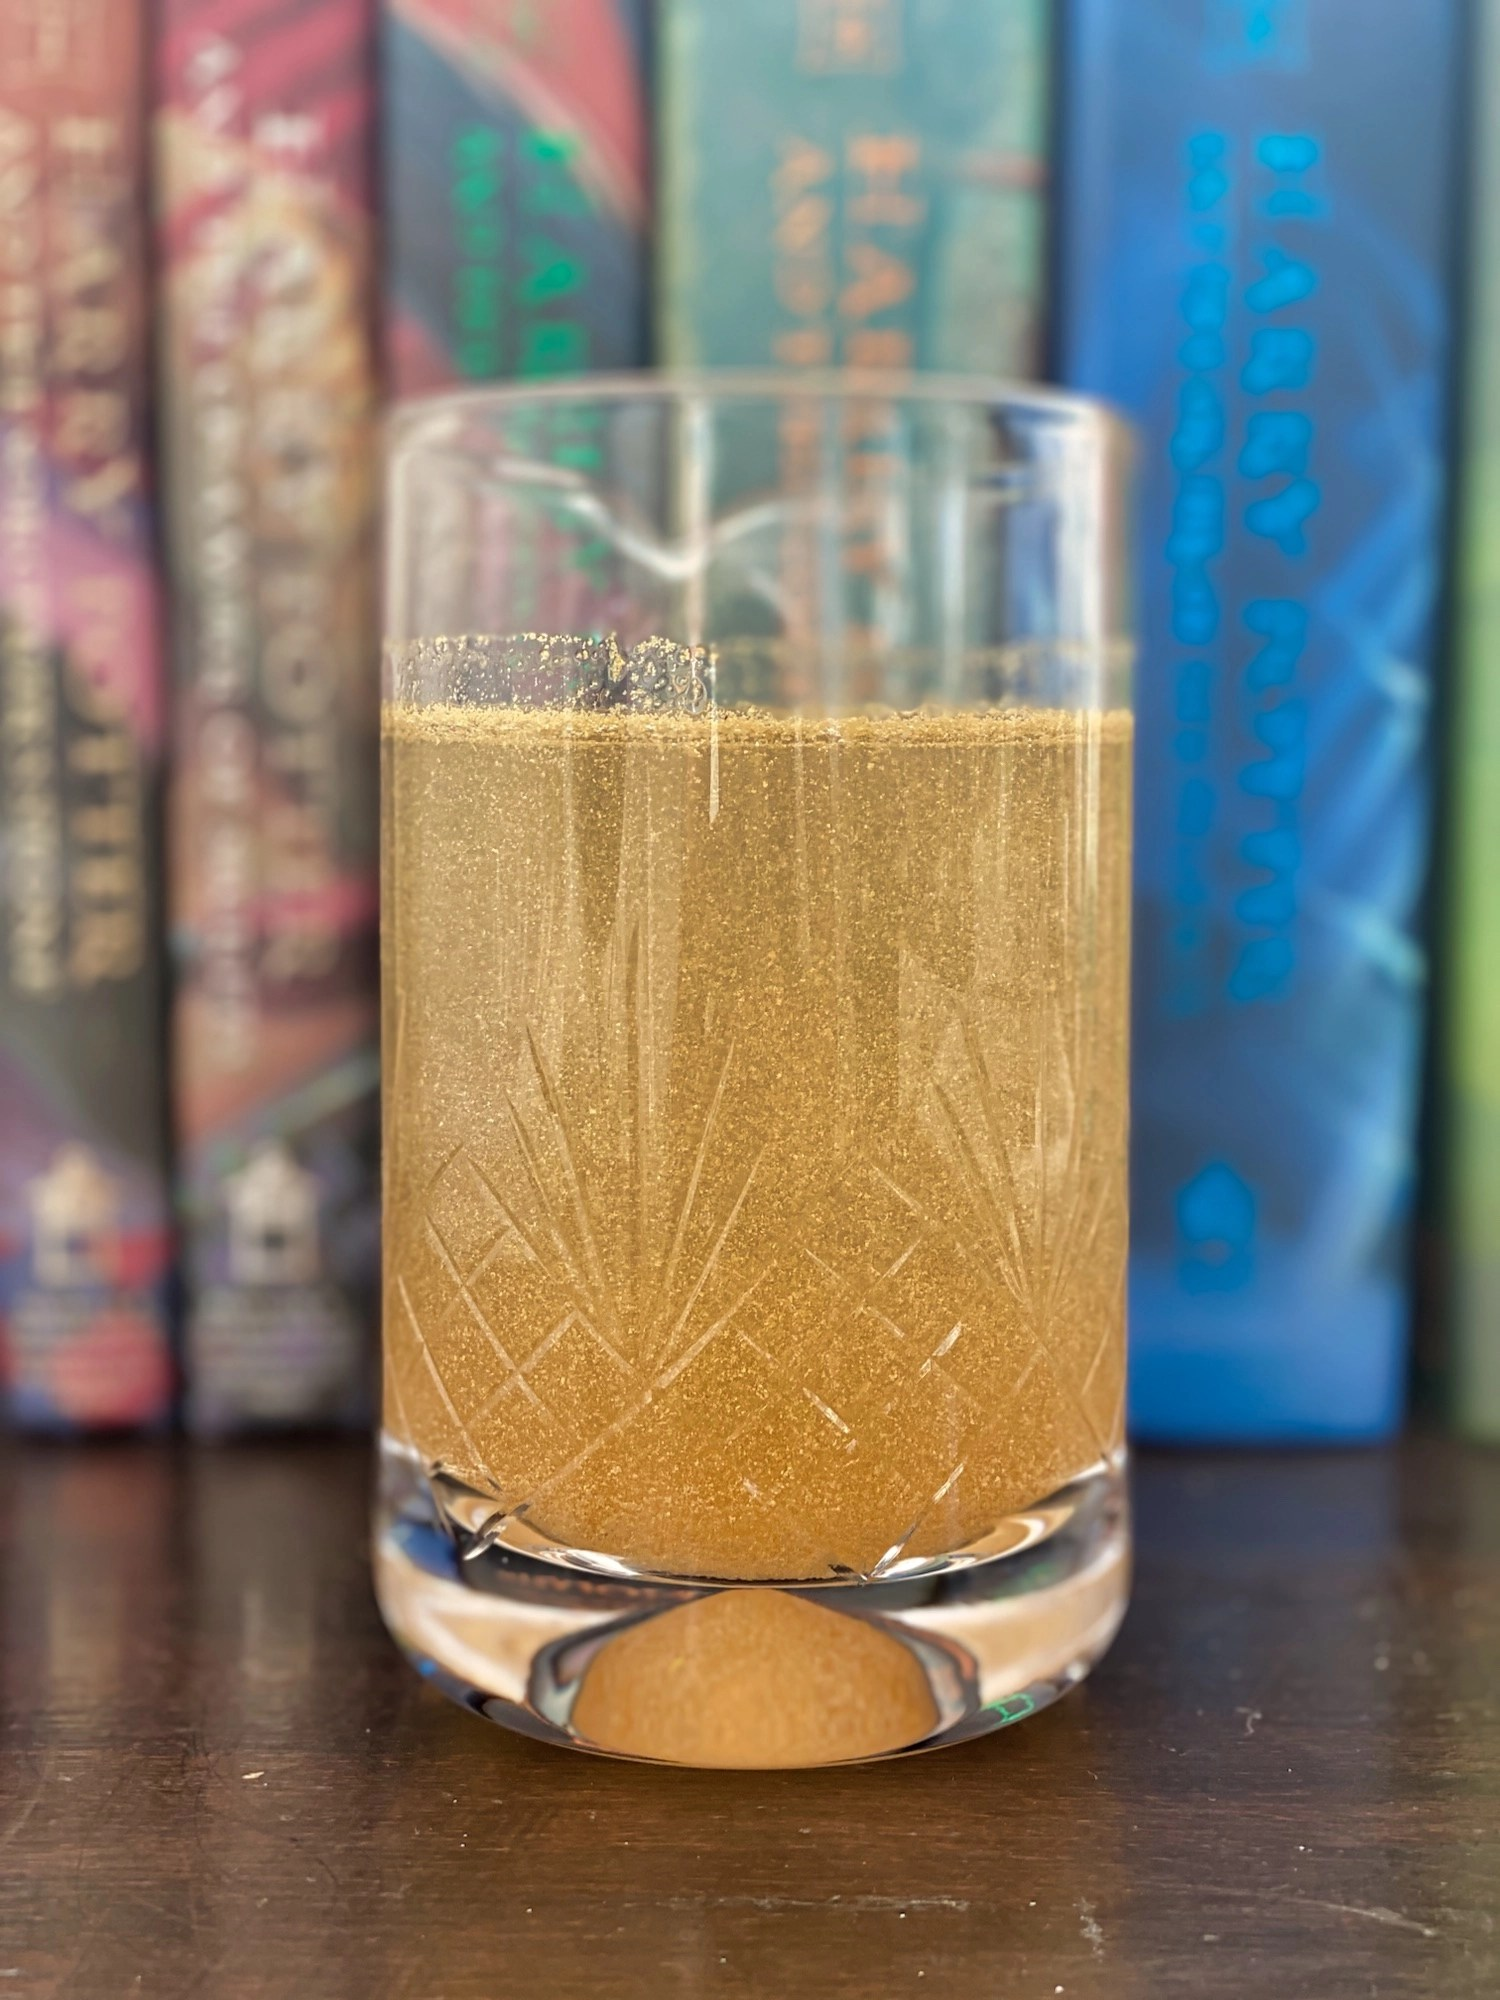 How to Make Felix Felicis - Glass of Felix